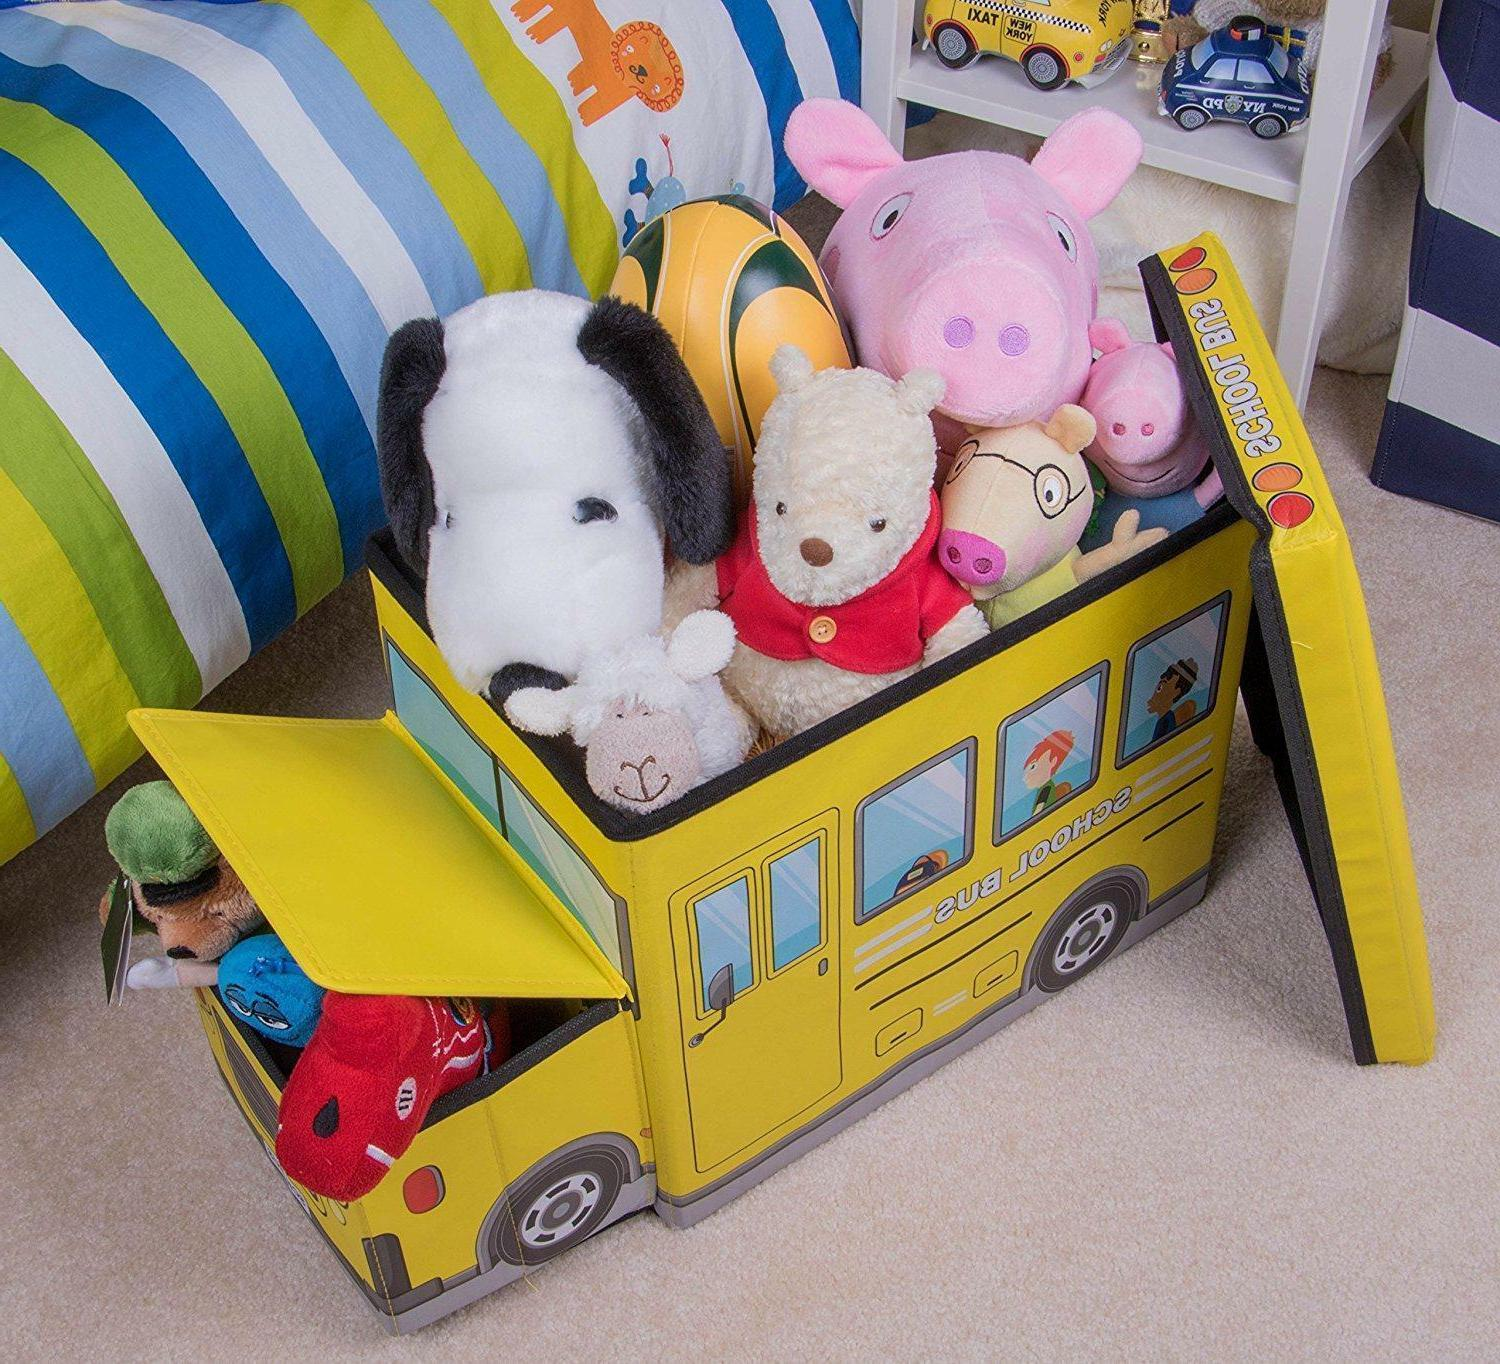 Kids Clothes Storage Seat Bedroom Closet Toy Books Boys Car Gift